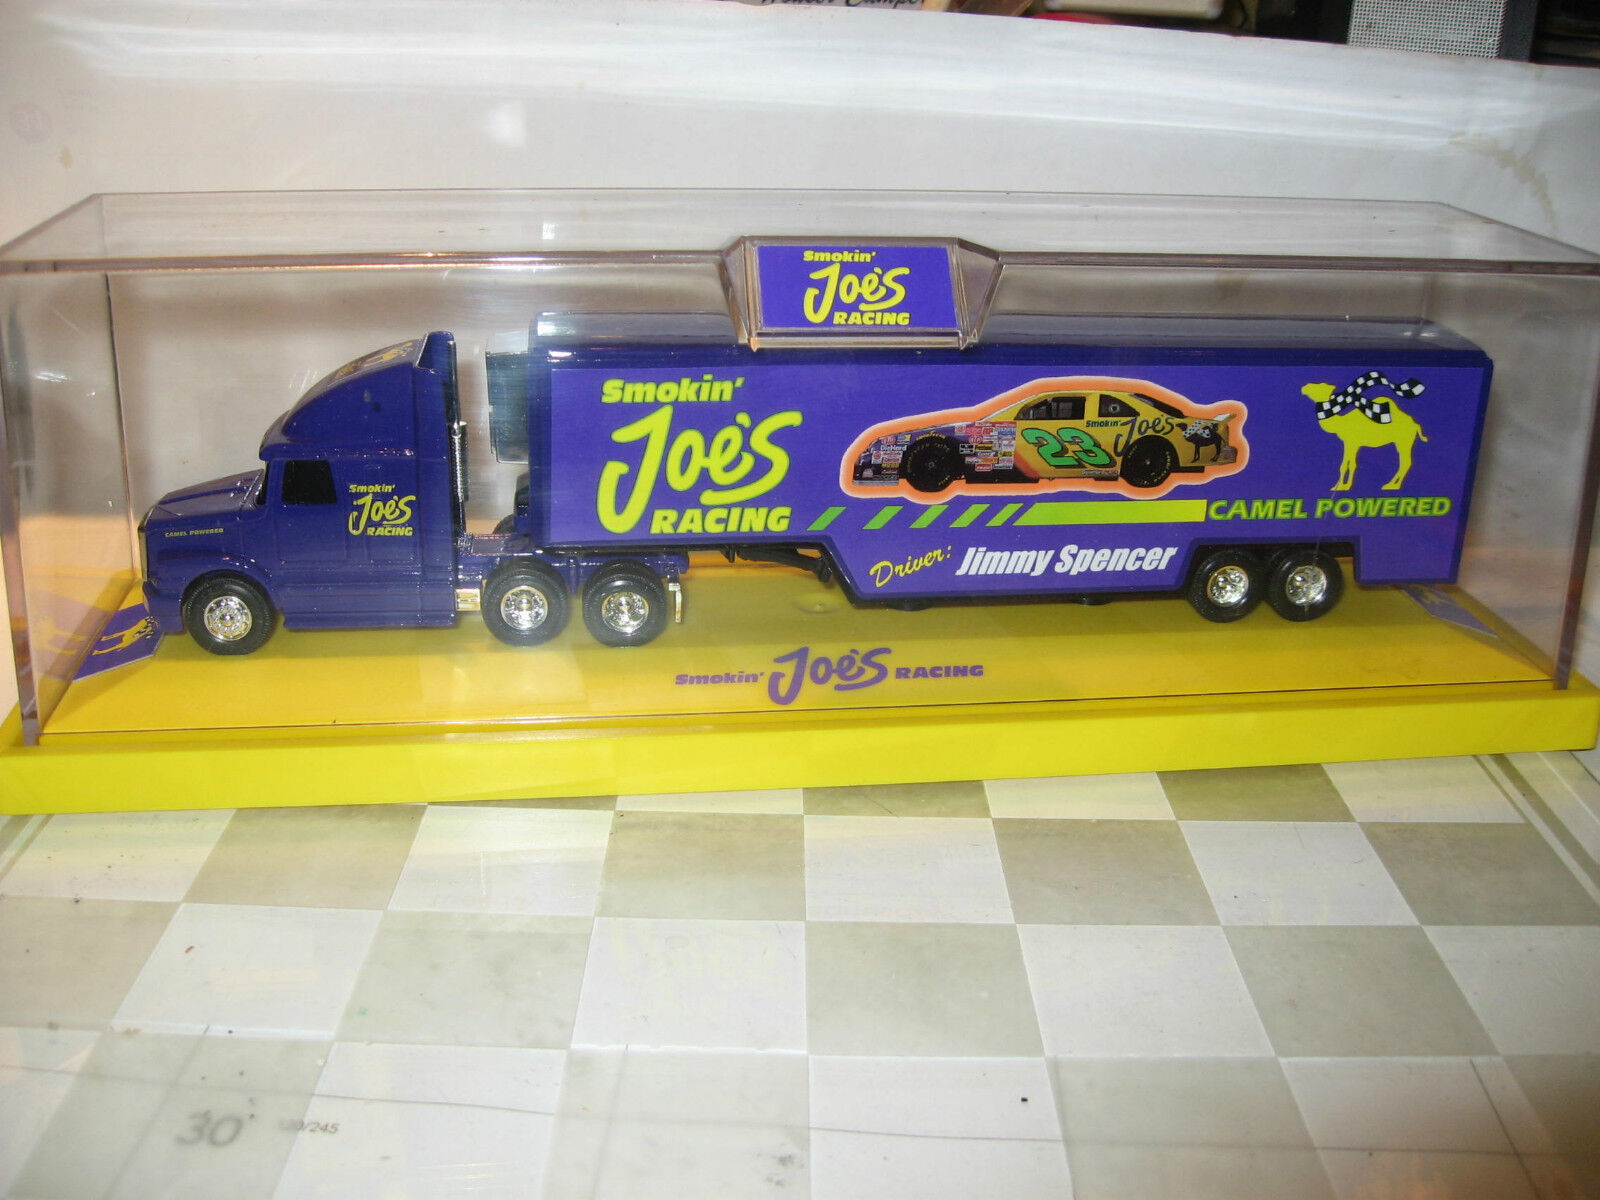 MIB ERTL SMOKEN SMOKEN SMOKEN JOE TRANSPORTER  .of 4000 1992 MADE IN USA.free w-w ship ed529f